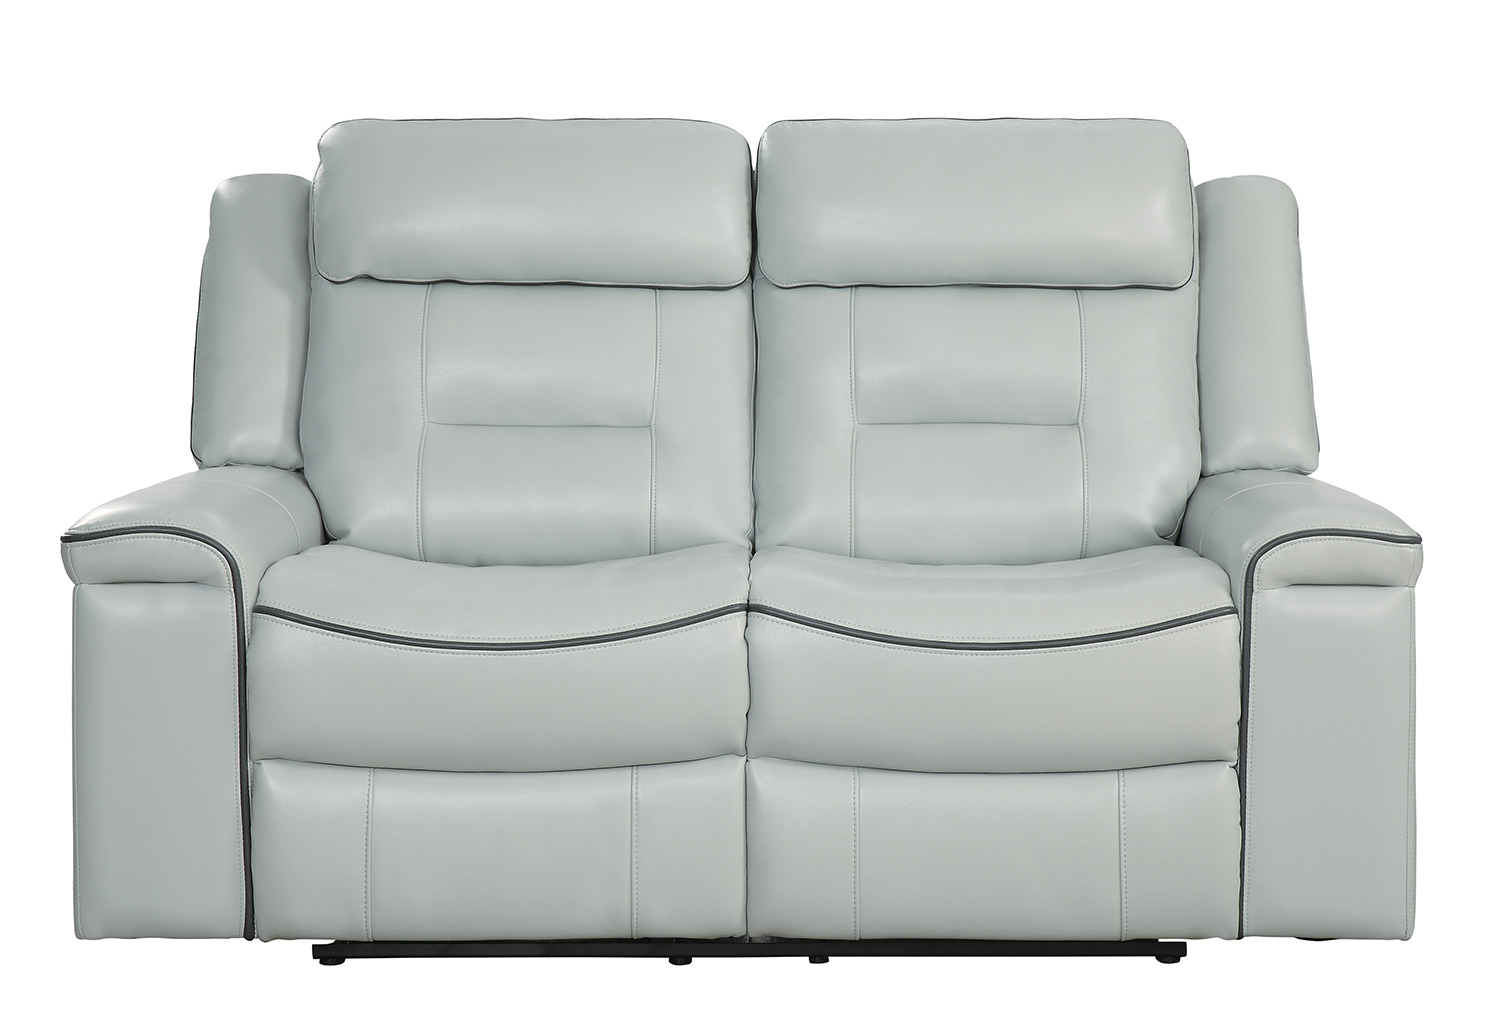 Homelegance Darwan Double Lay Flat Reclining Loveseat - Light Gray